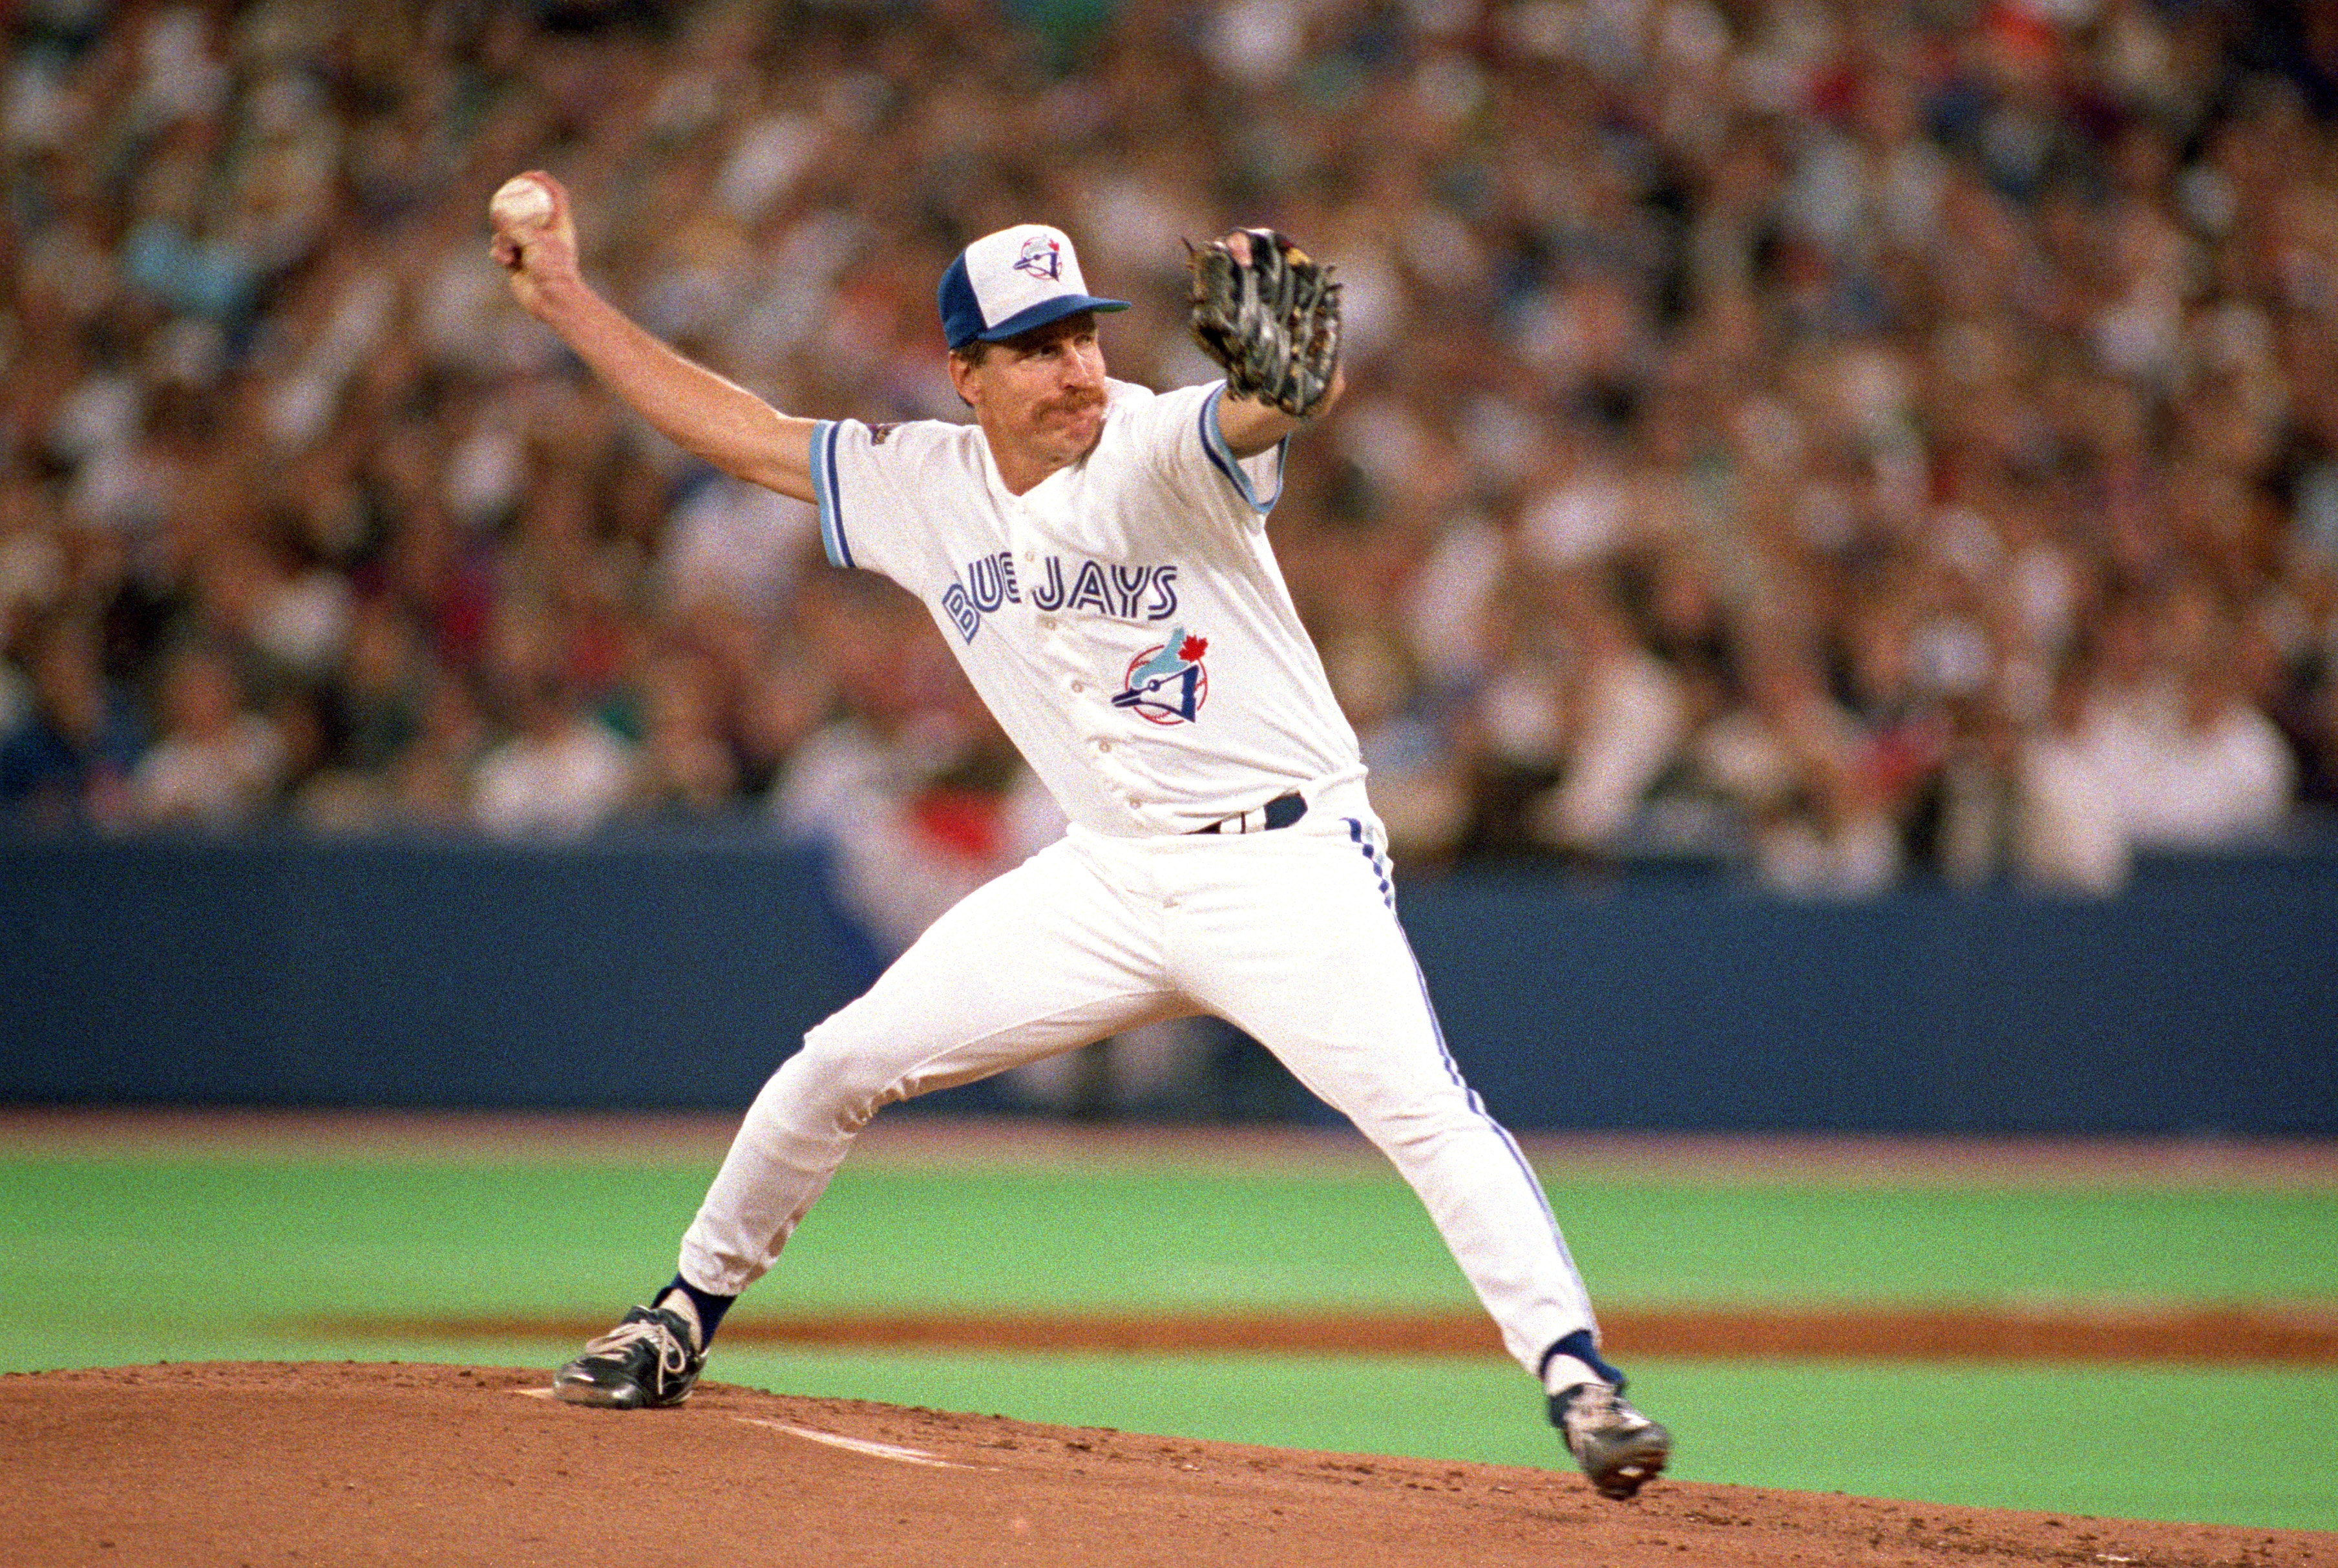 TORONTO - OCTOBER 22:  Pitcher Jack Morris #47 of the Toronto Blue Jays on the mound during game 5 of the World Series against the Atlanta Braves on October 22, 1992 at the Skydome in Toronto, Canada. (Photo by Rick Stewart/Getty Images)